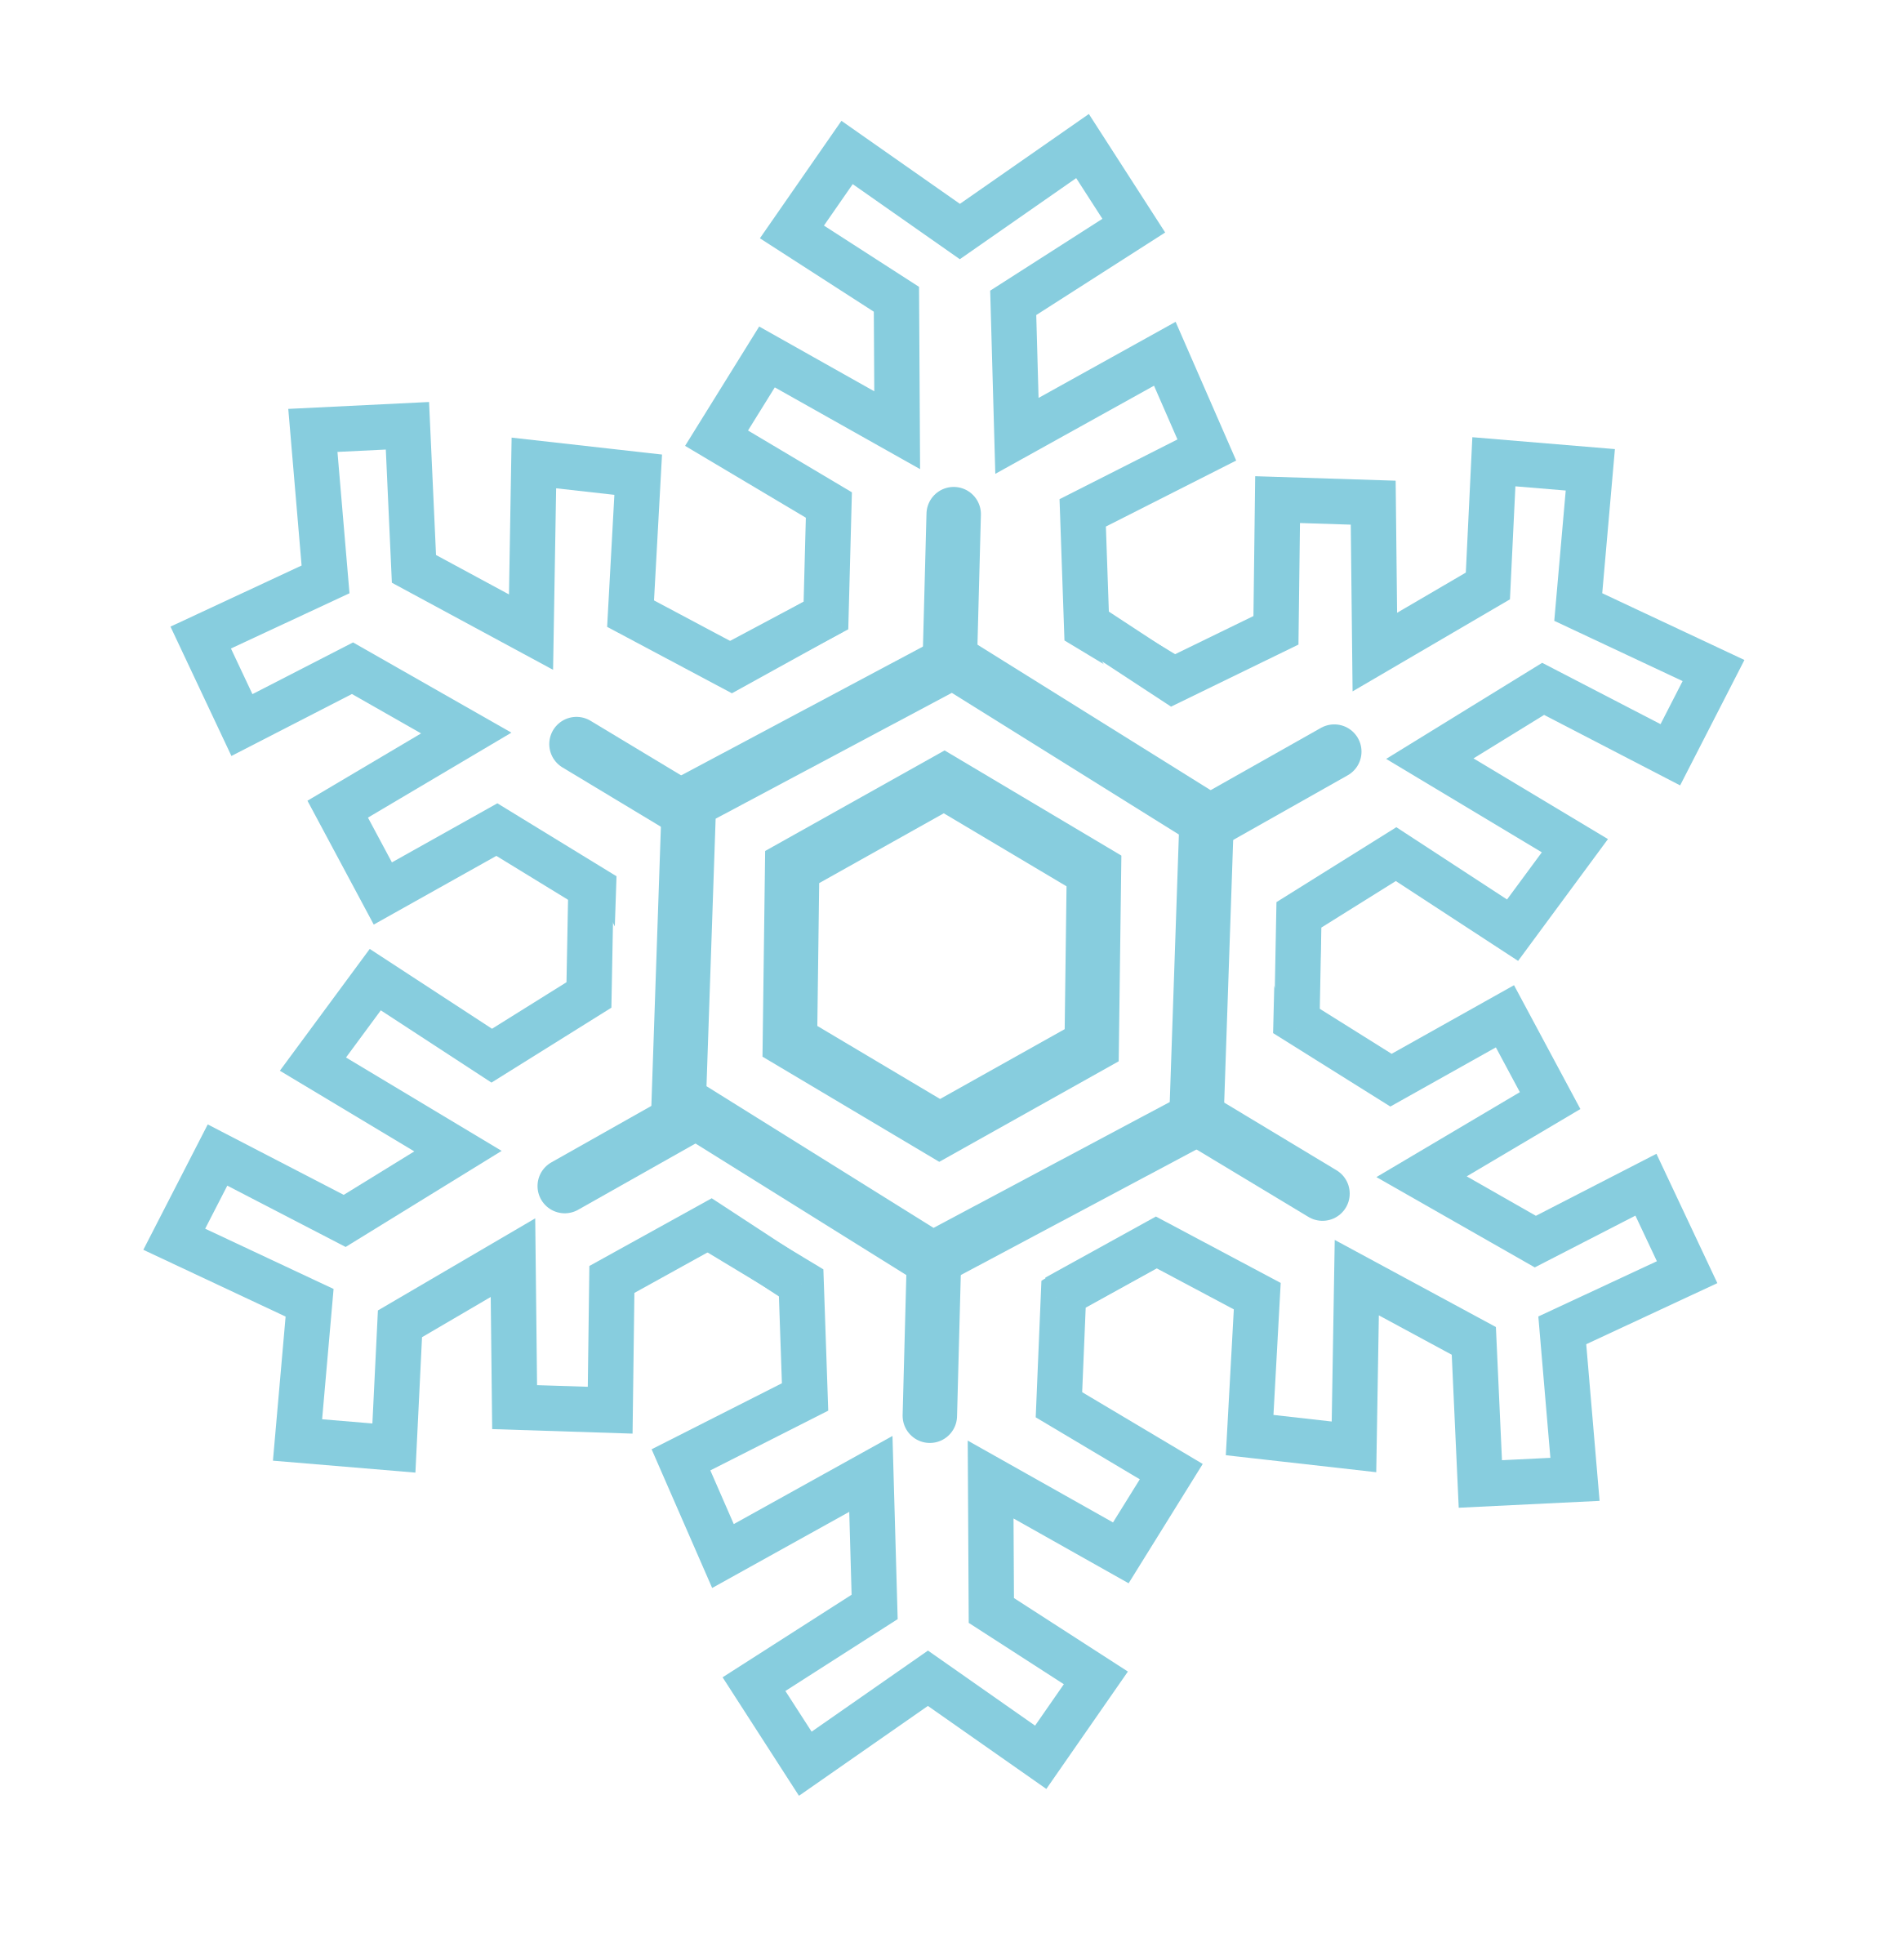 Ice and snowflake clipart jpg black and white Clipart - Snowflake (stylized) jpg black and white